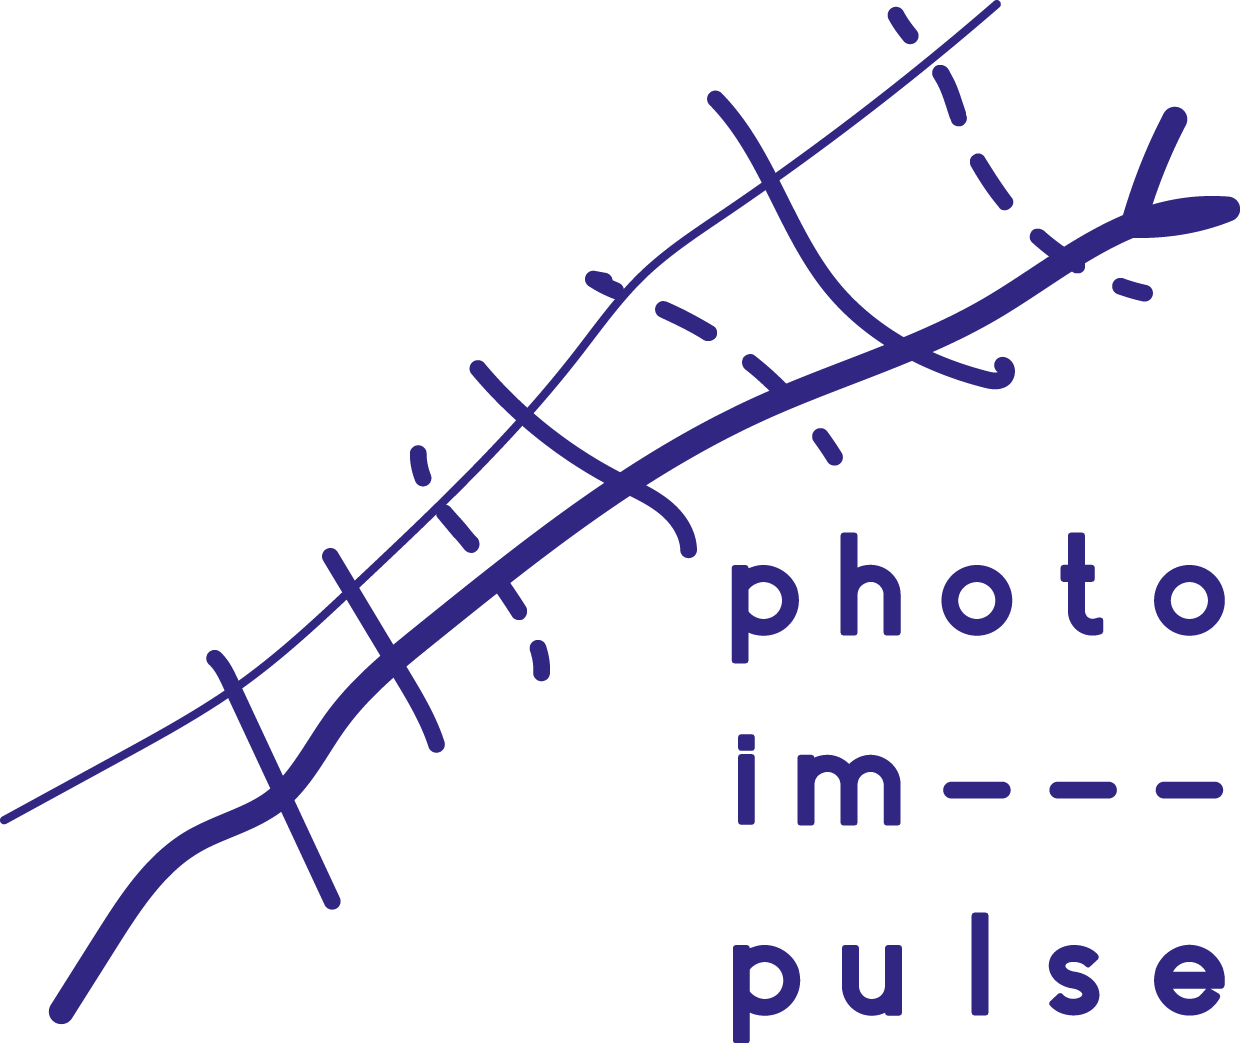 Photo Impulse Logo